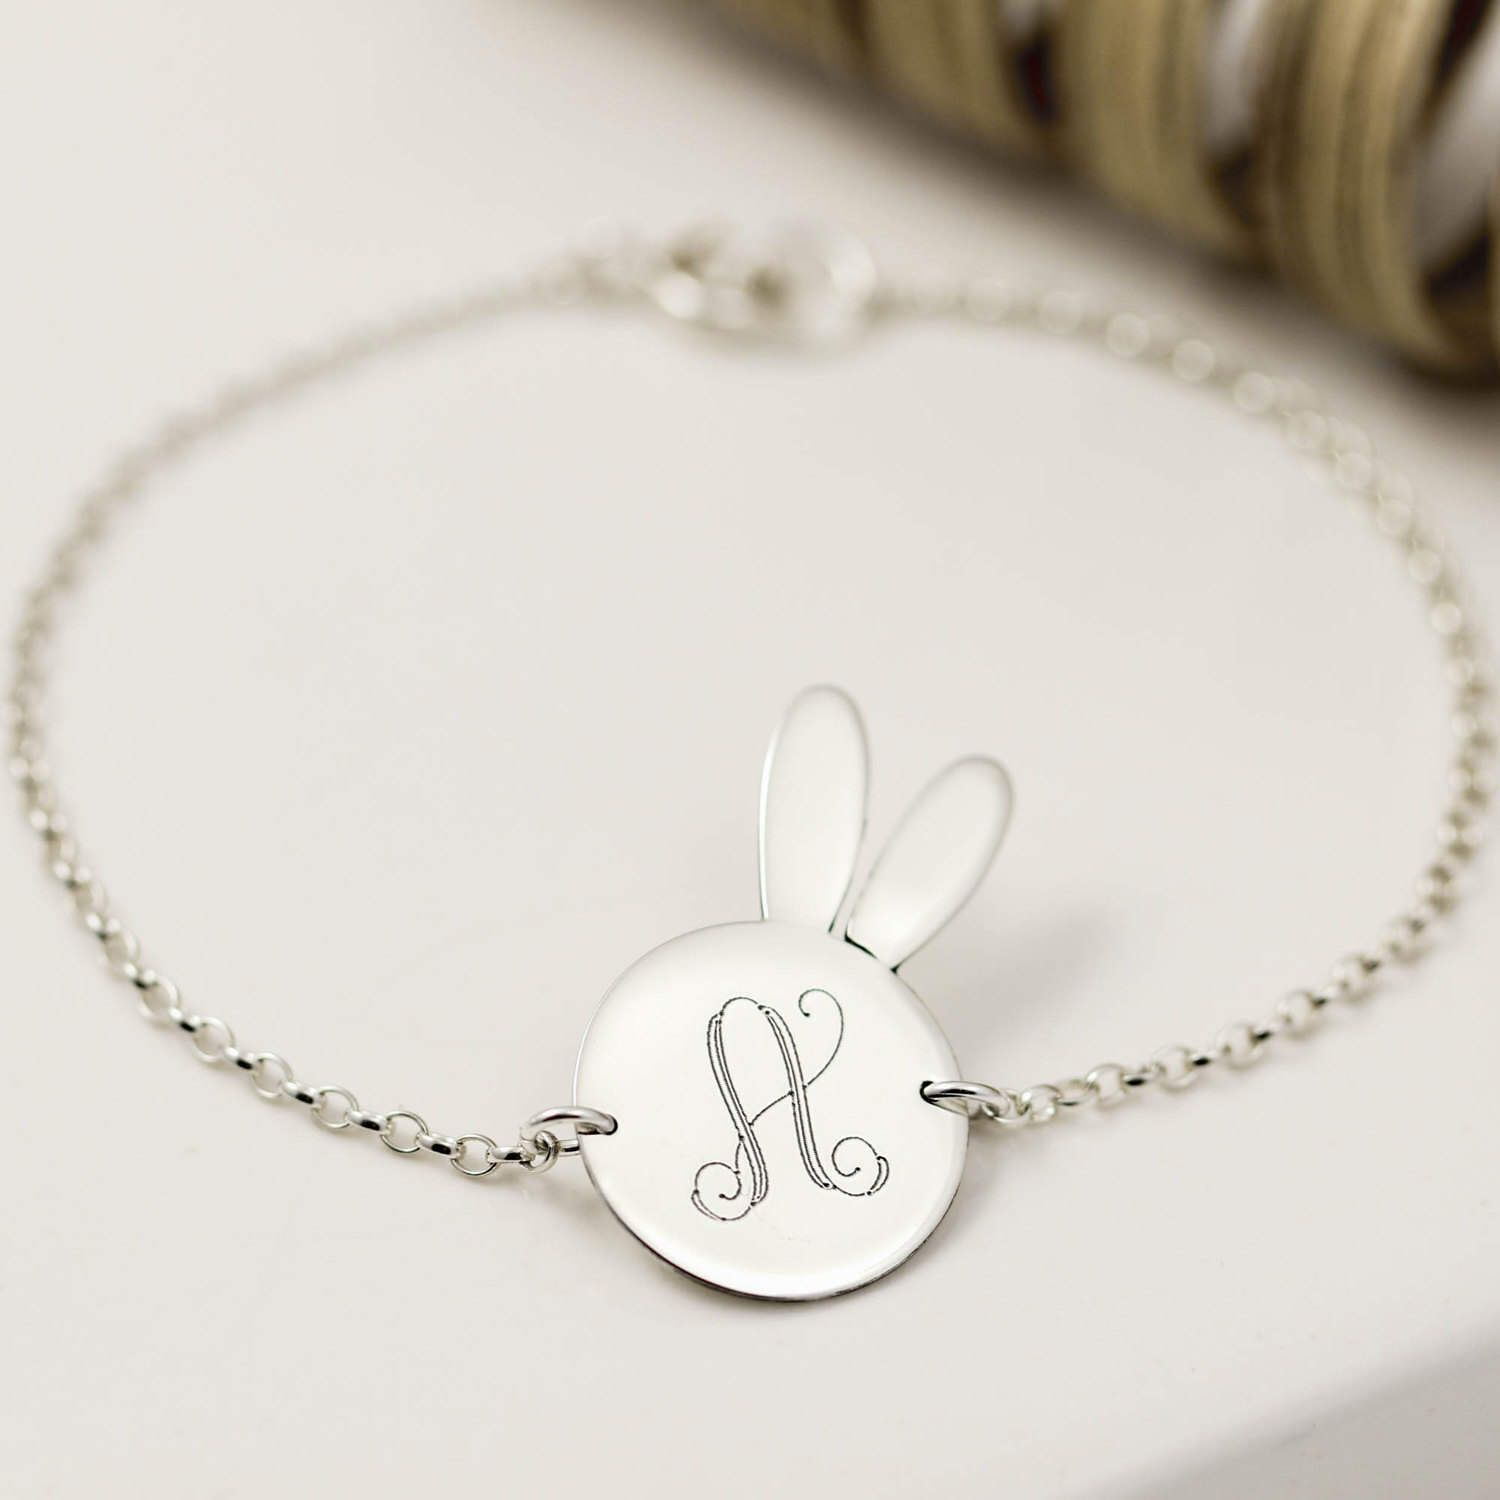 au fullxfull bracelet lcsq il bridesmaid monogram monogrammed zoom listing bangle